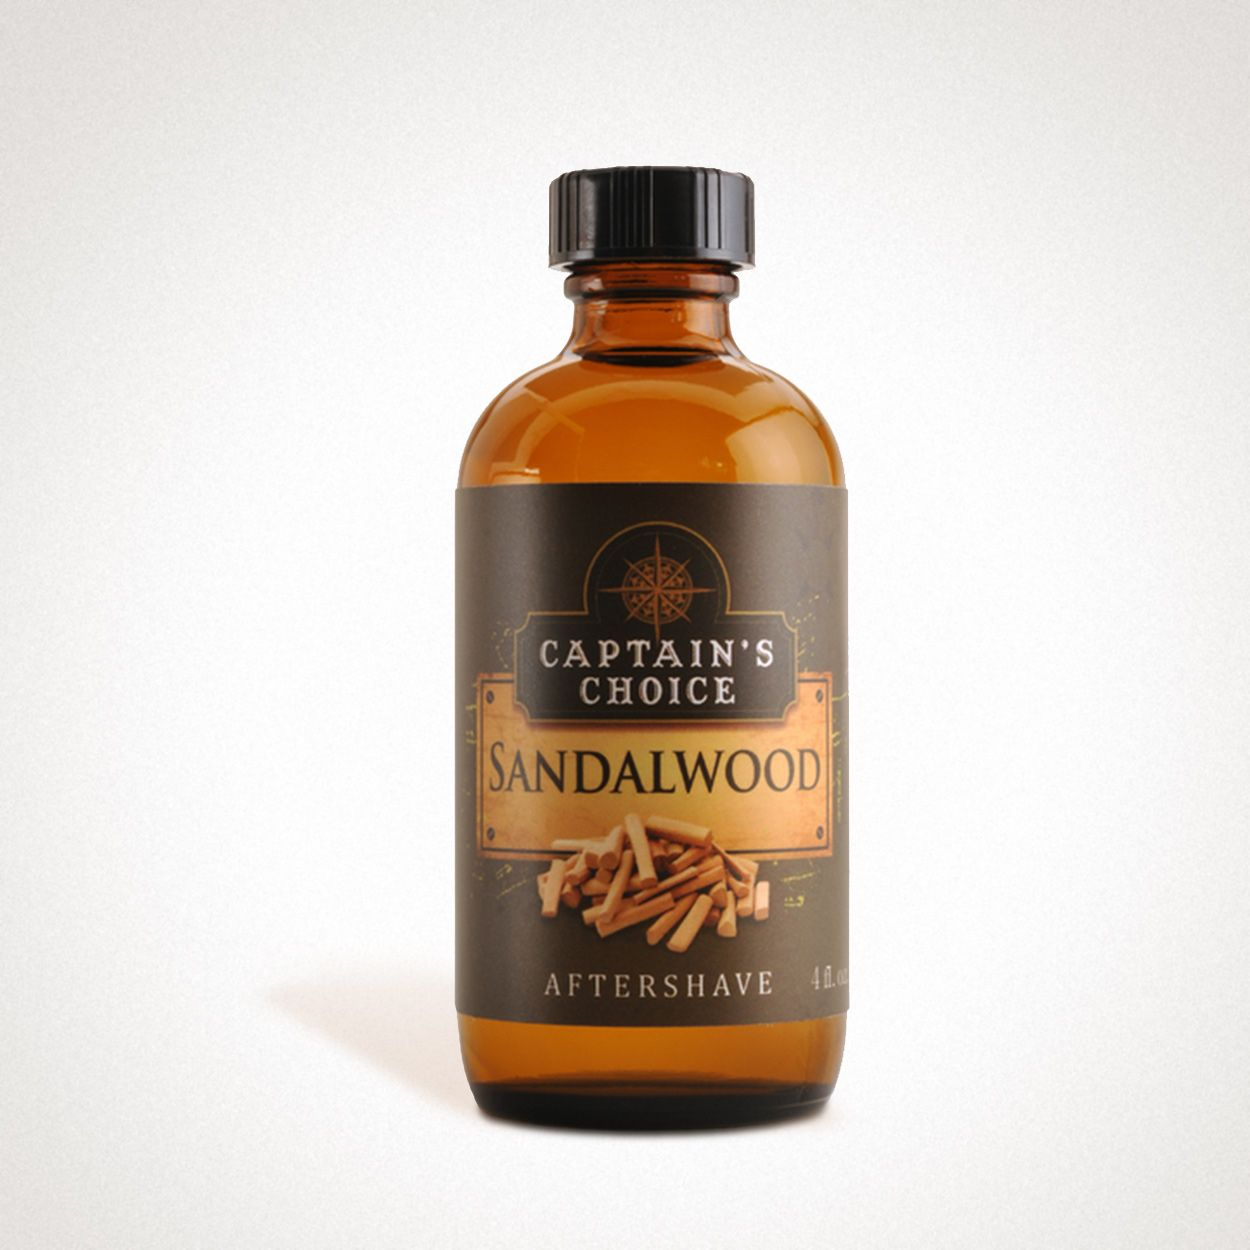 Butelka Captain's Choice Sandalwood Aftershave (zdjęcie Captain's Choice)